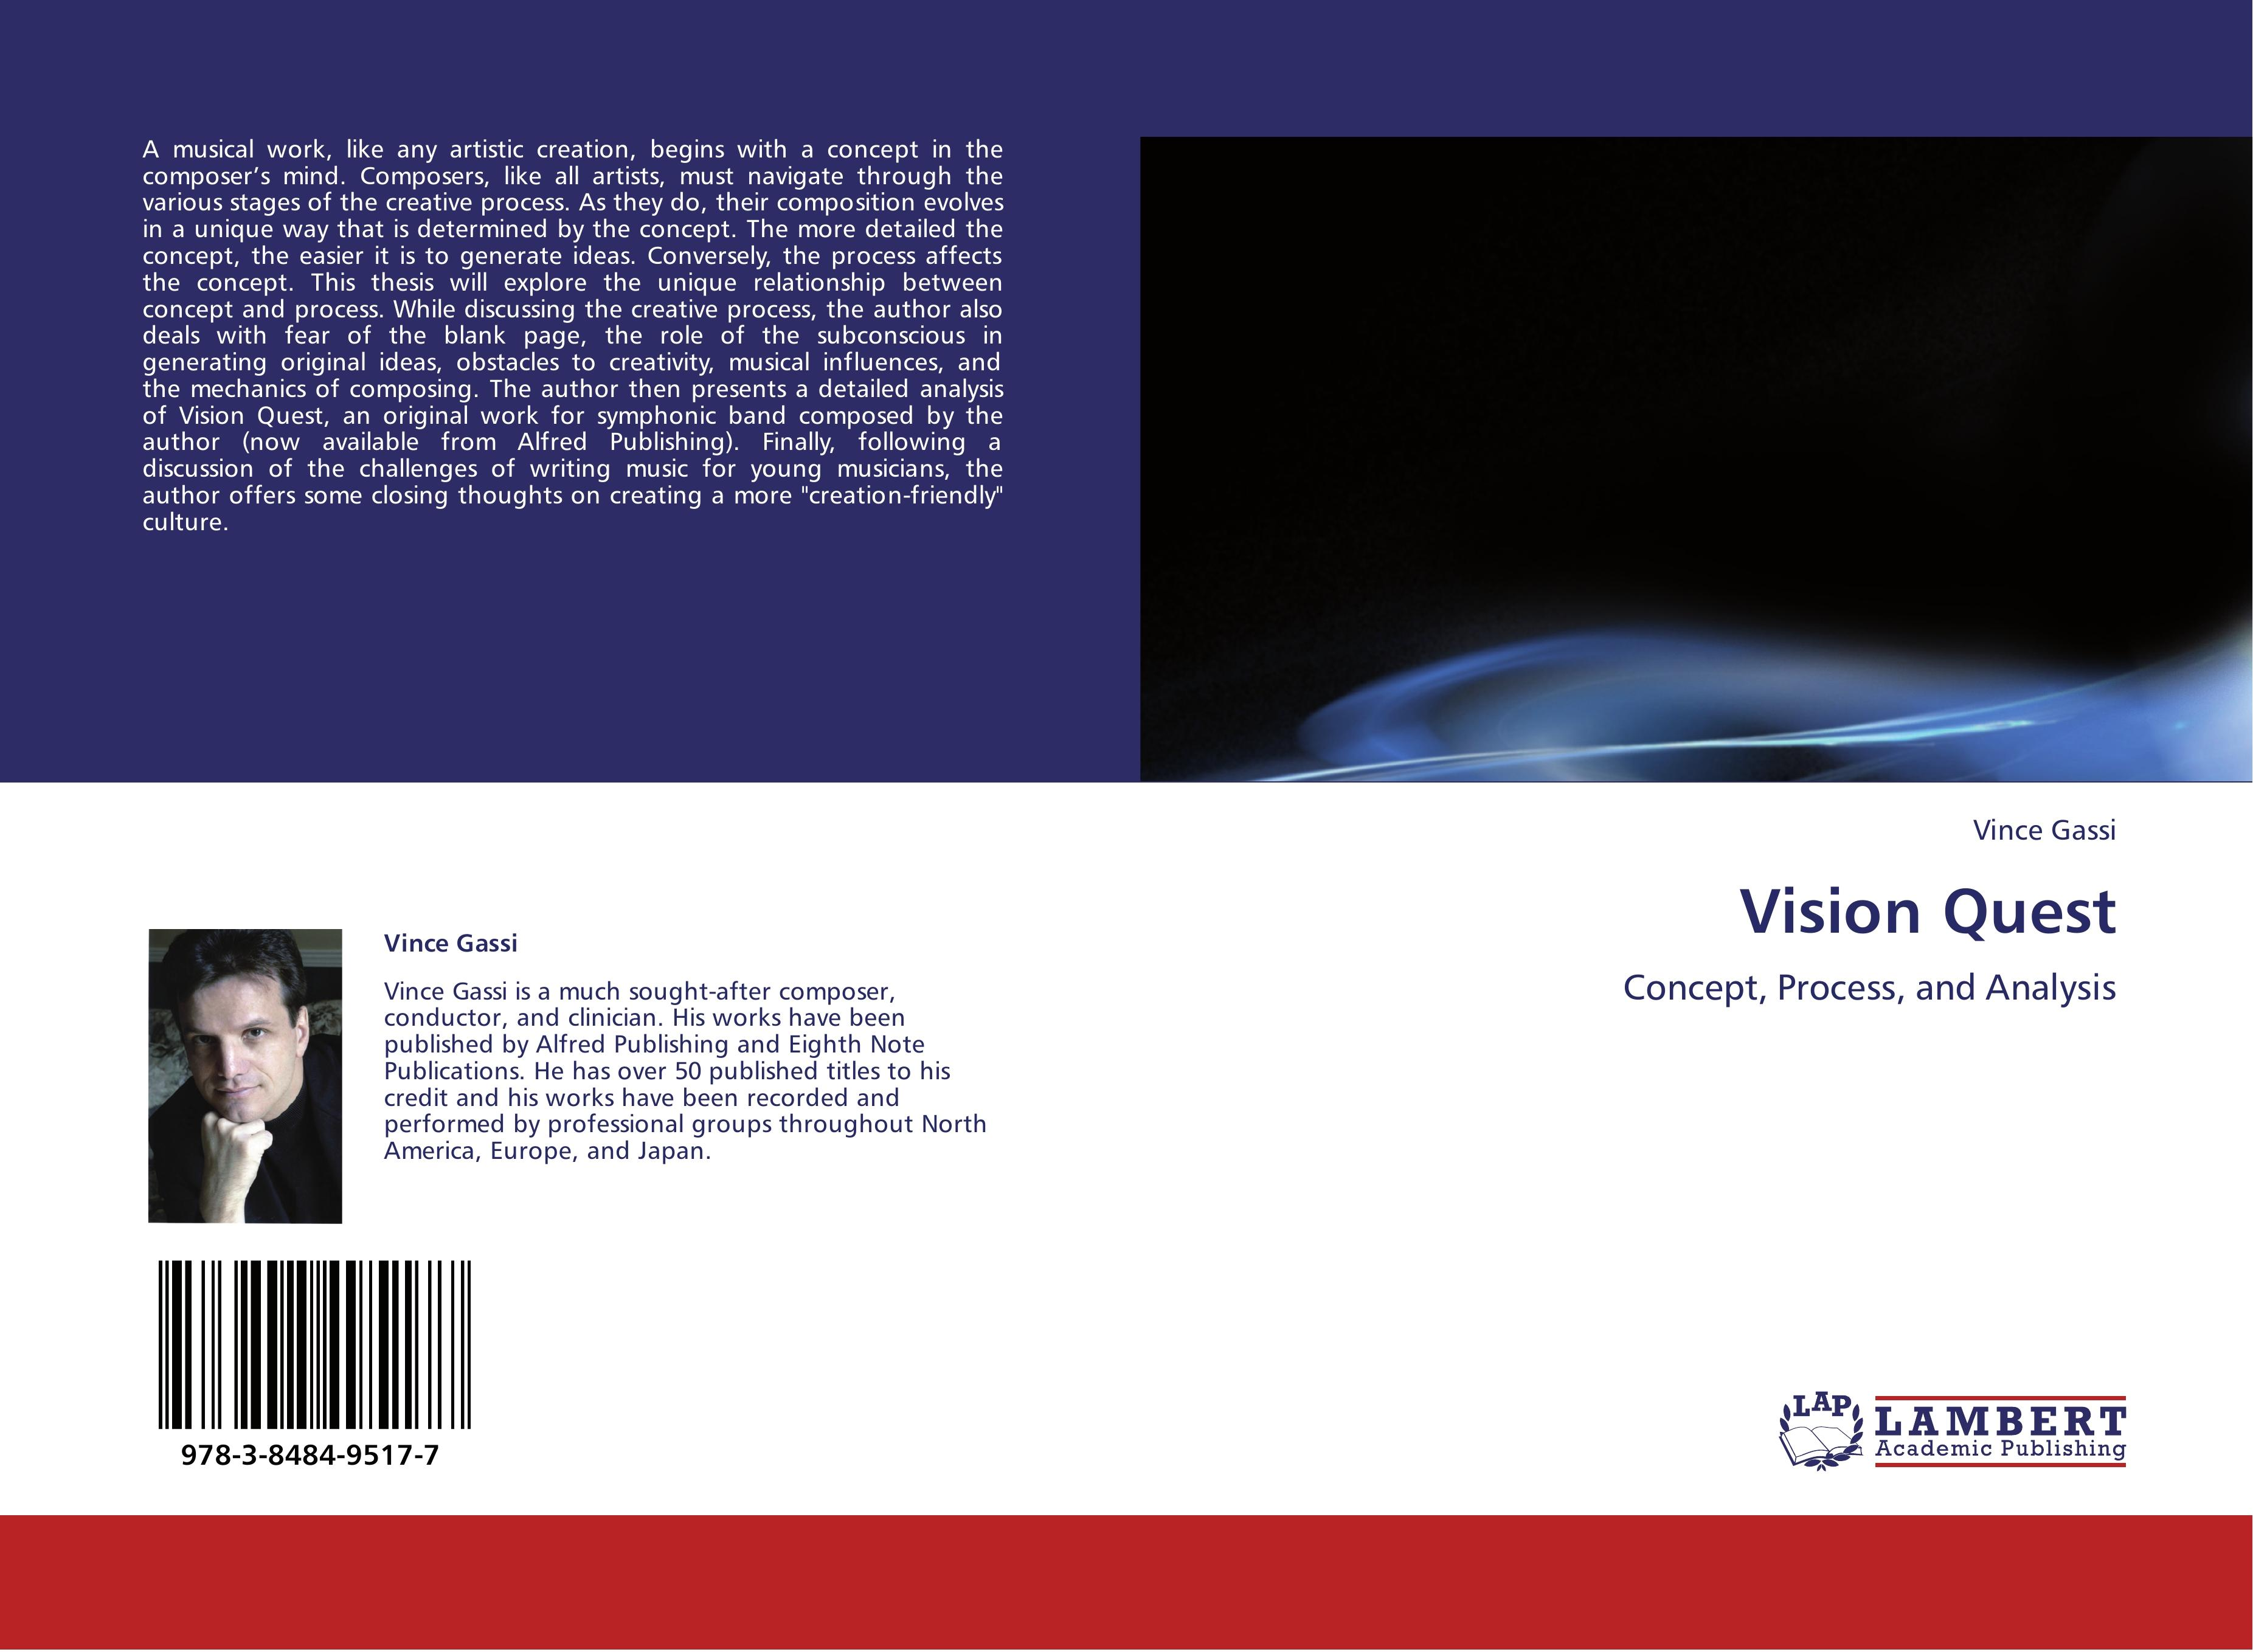 Vision Quest  Concept, Process, and Analysis  Vince Gassi  Taschenbuch  Paperback  Englisch  2012 - Gassi, Vince